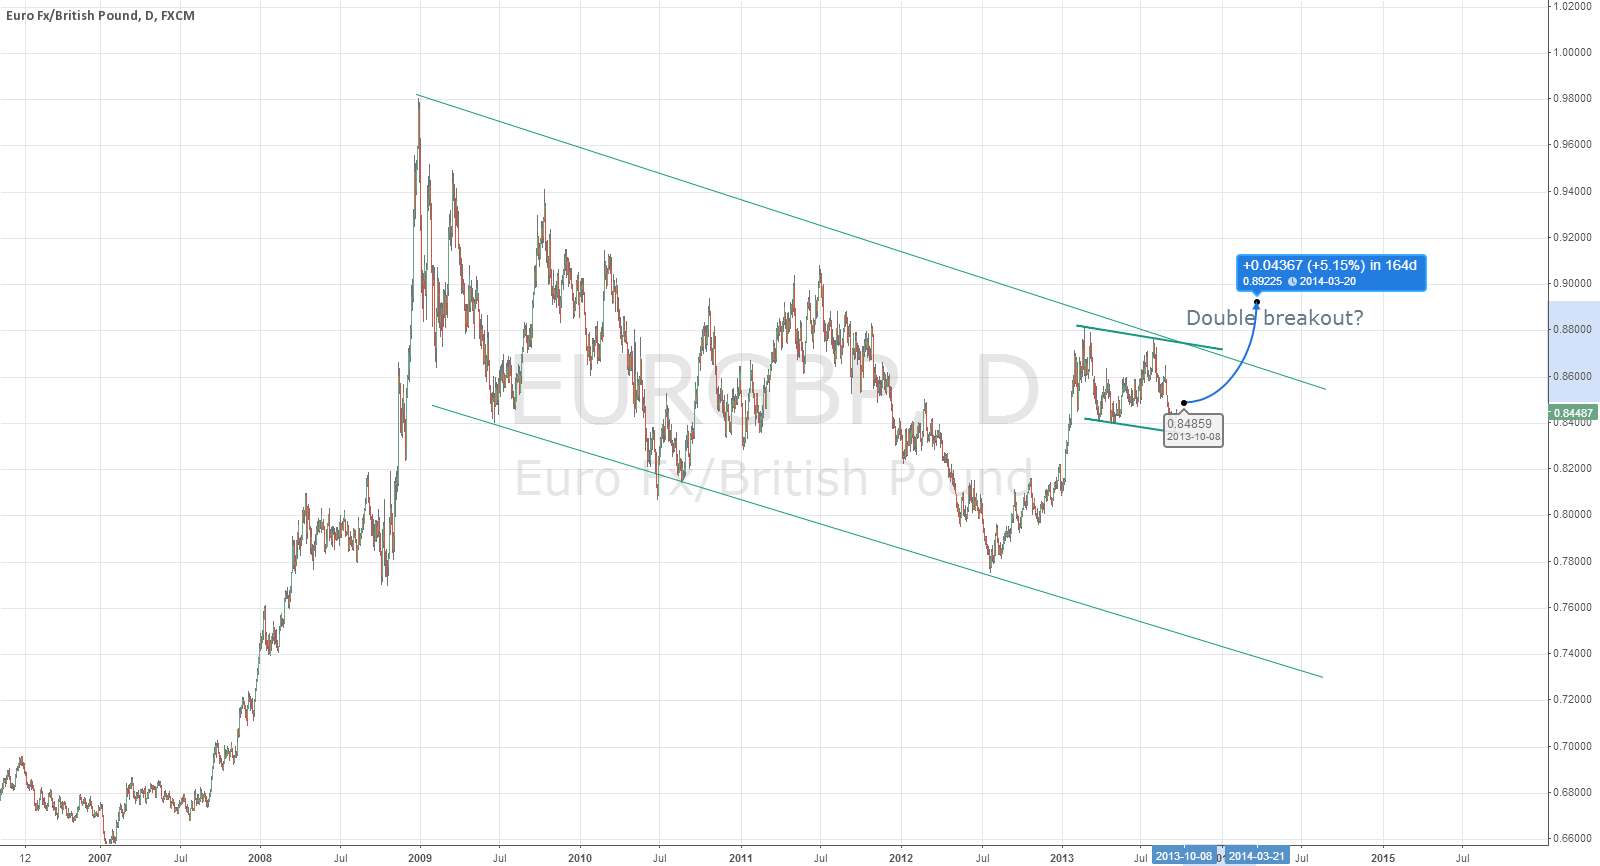 EURGBP could aim for double breakout